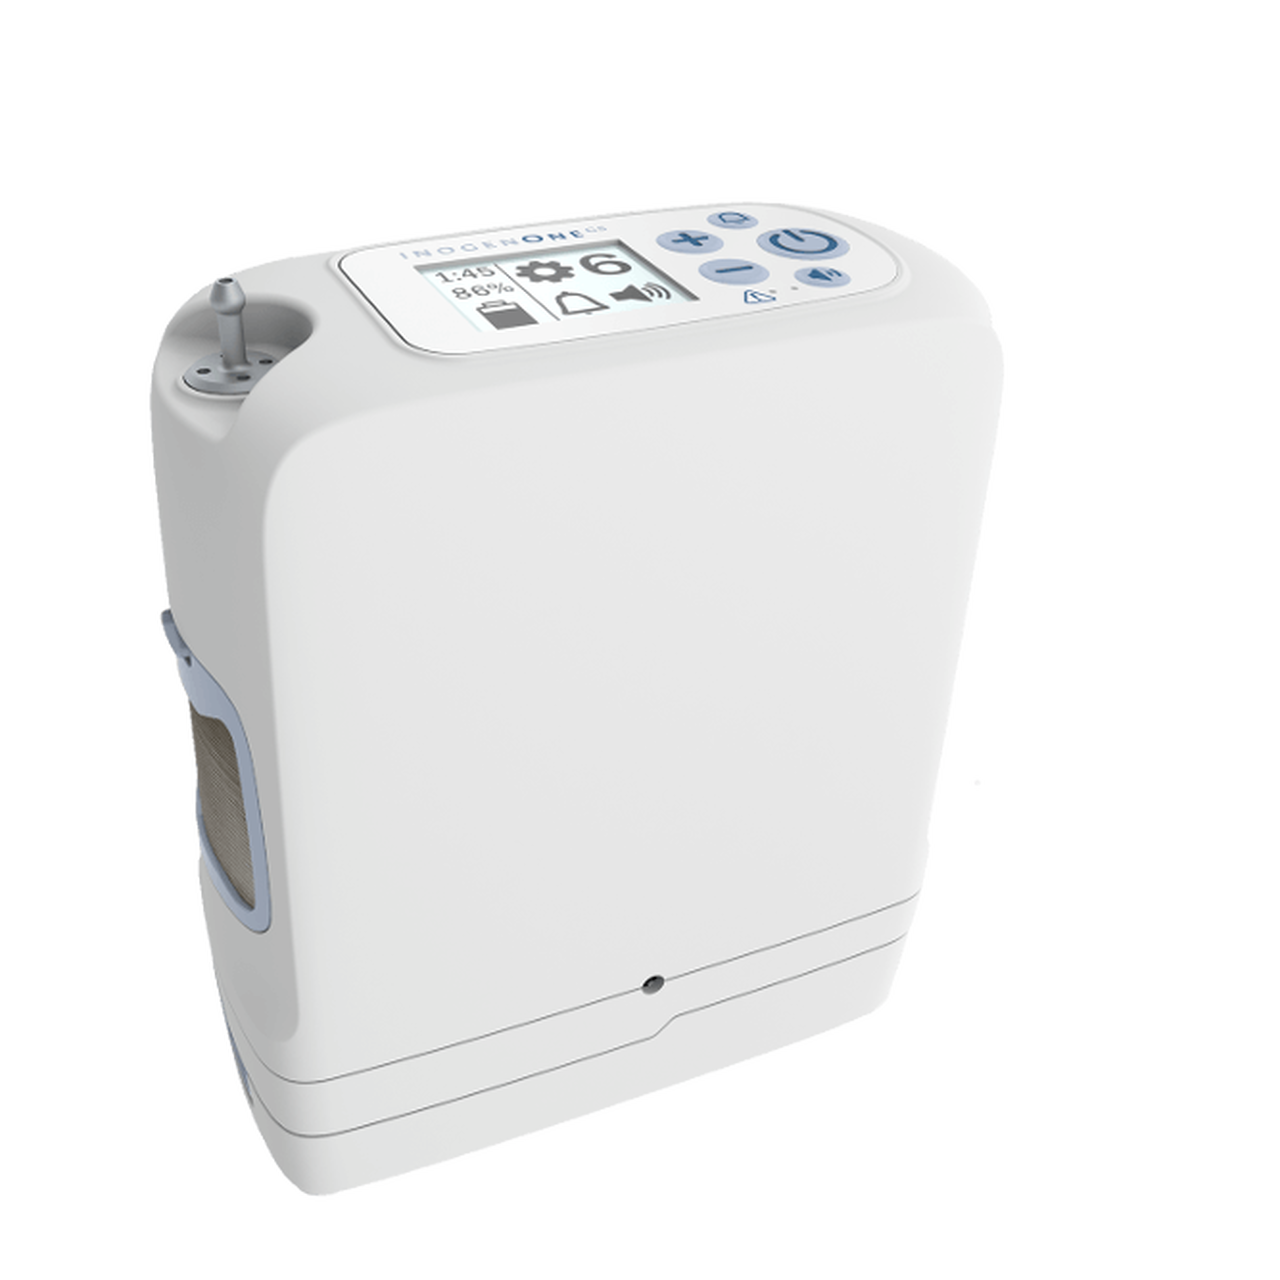 Inogen One G5 Portable Oxygen Concentrator System